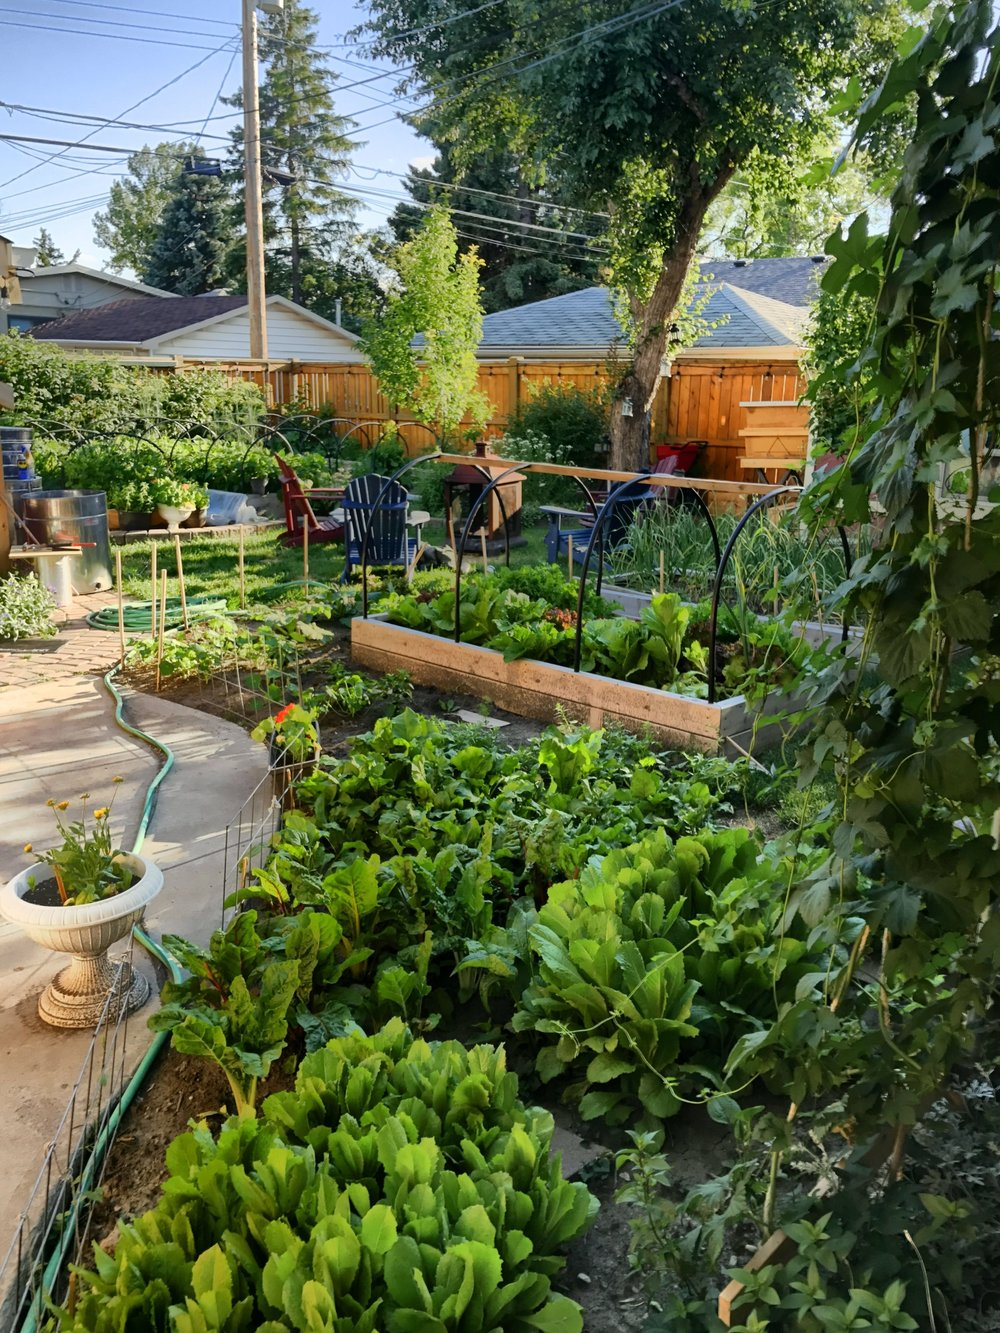 Maximizing our urban space to provide a local source of food.